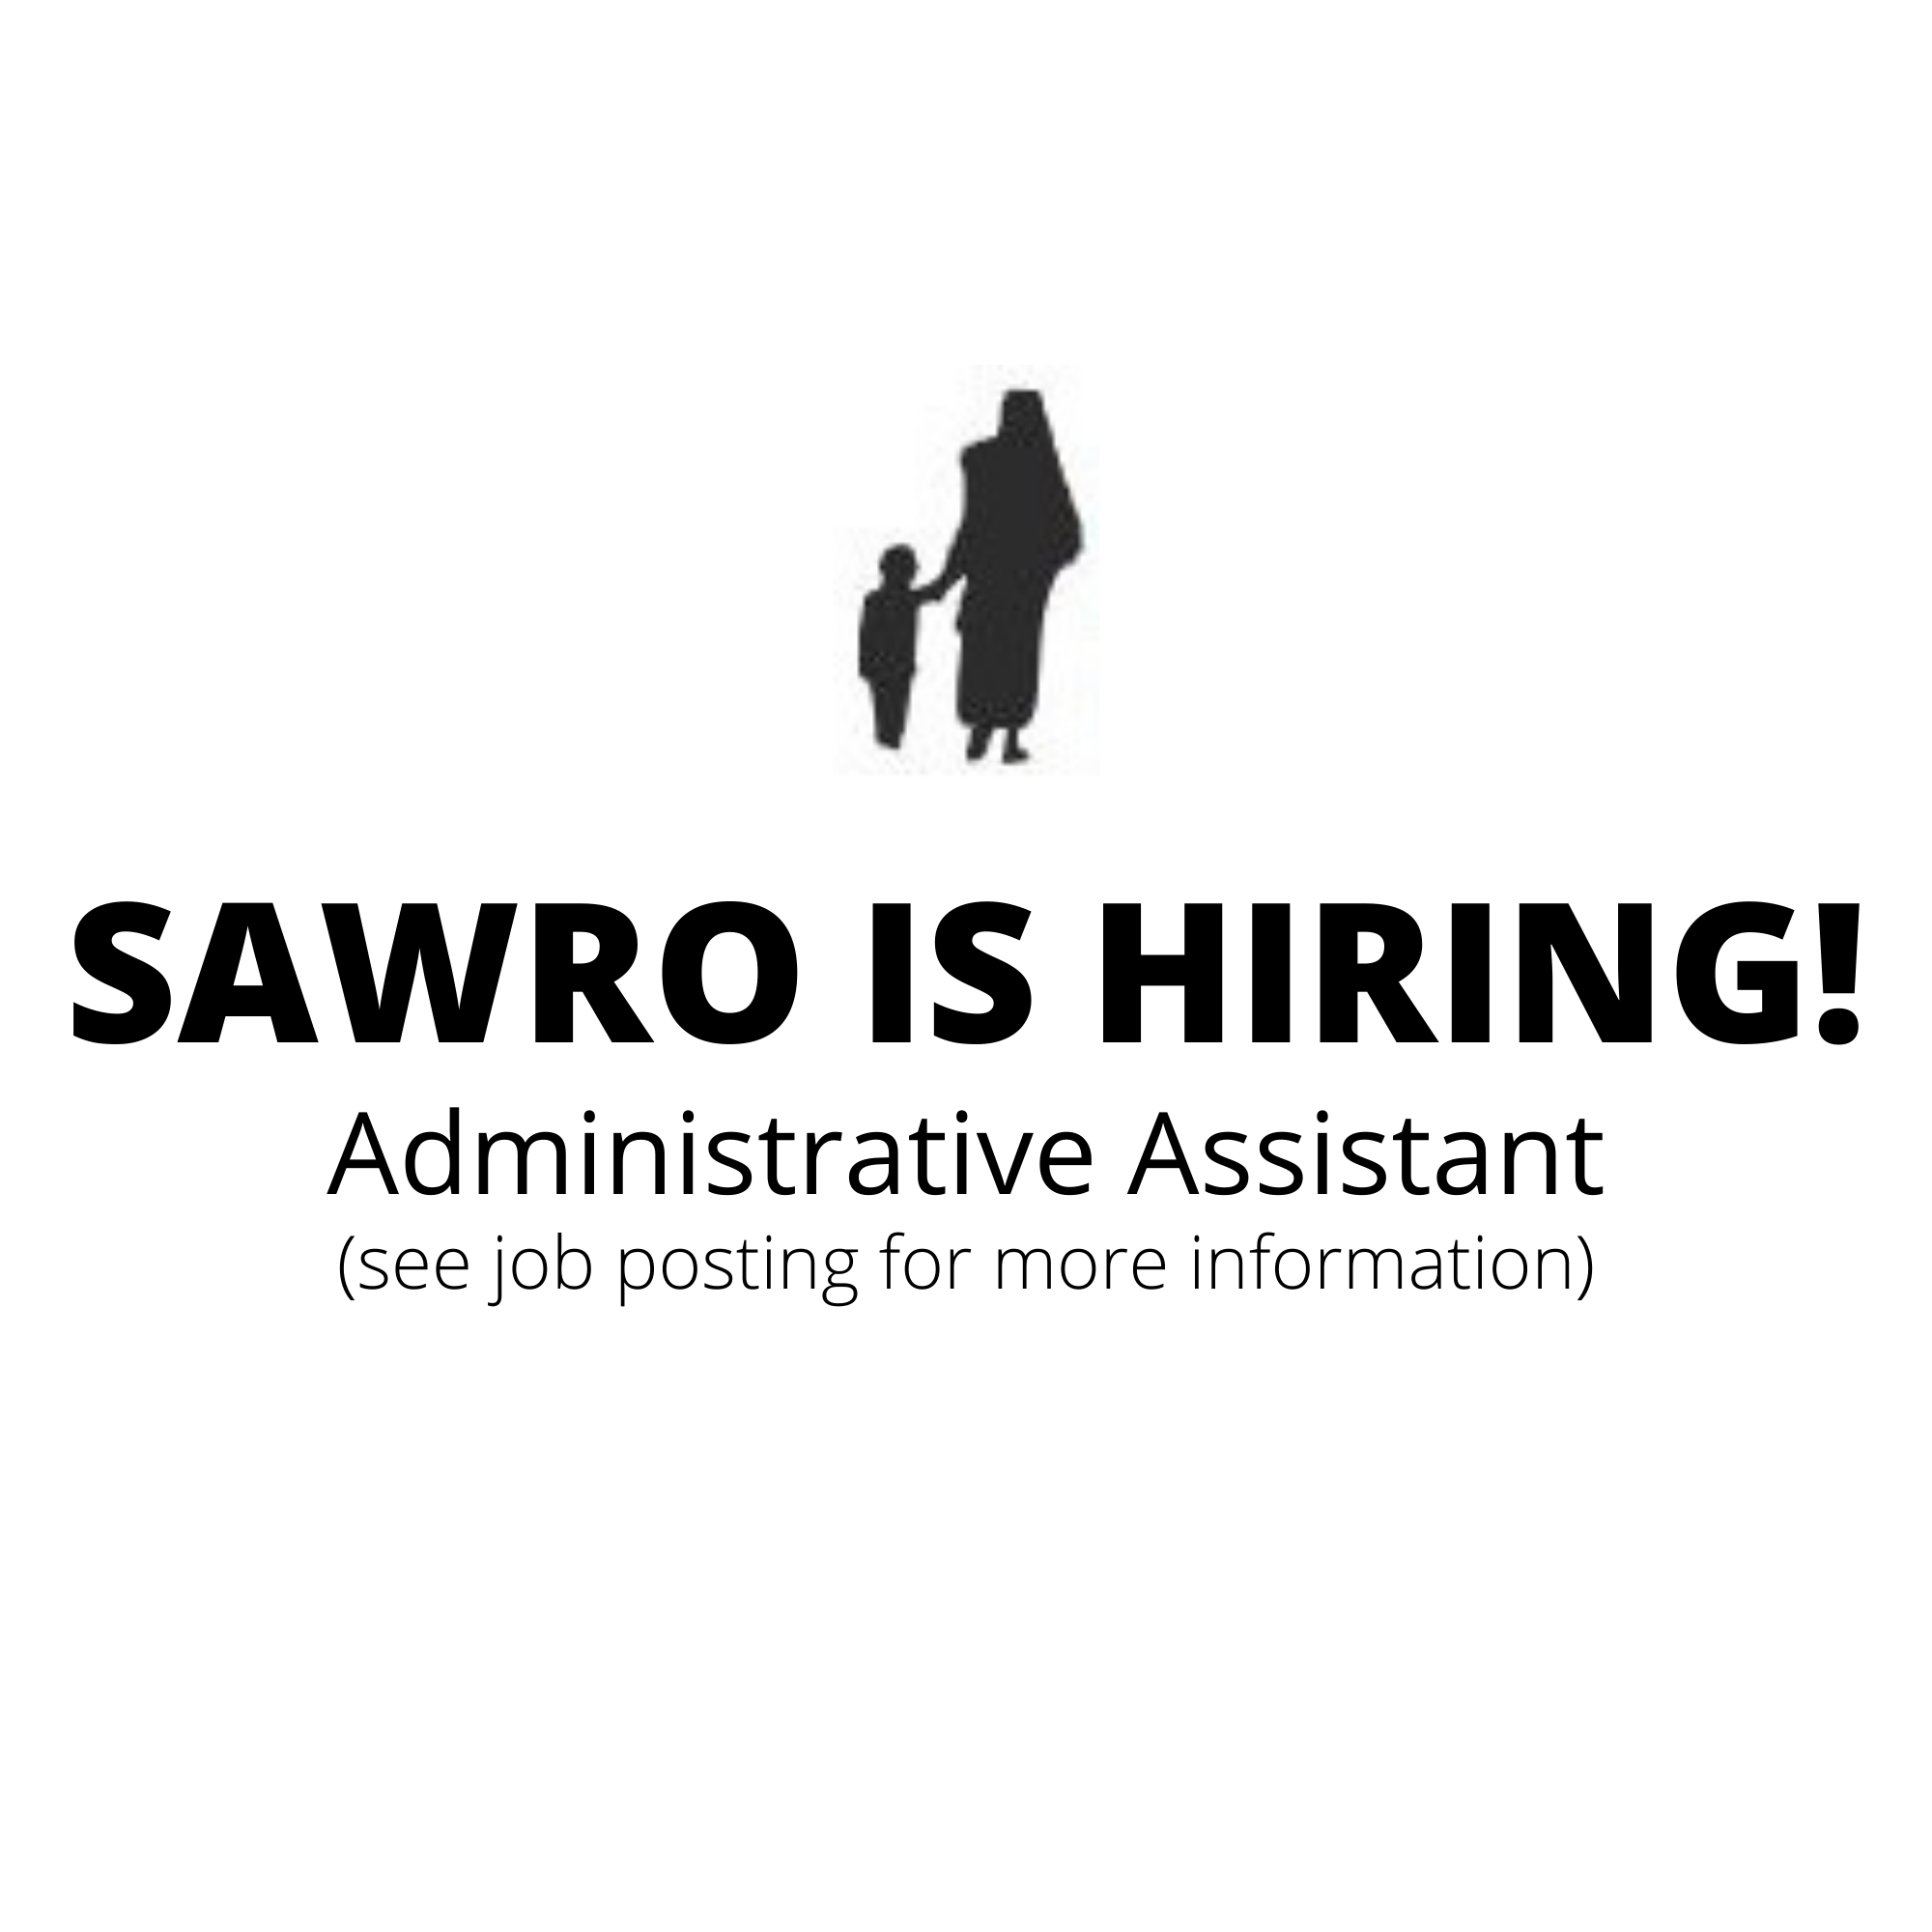 Hiring for Administrative Assistant